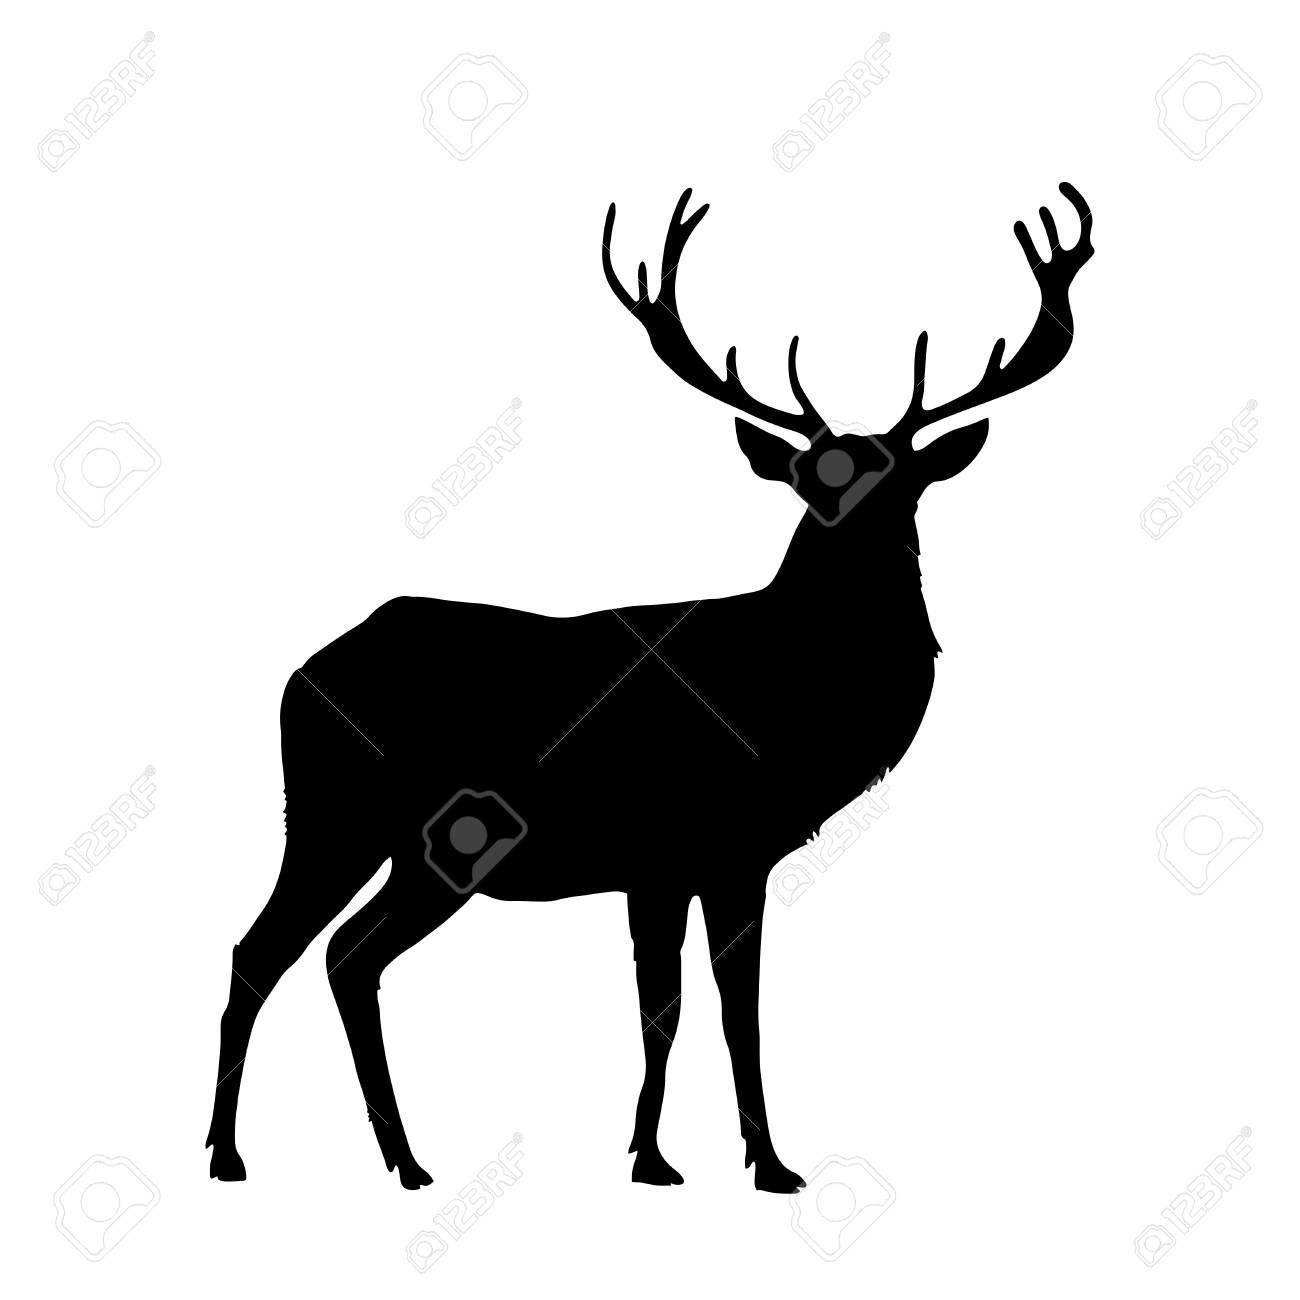 Black silhouette of reindeer with big horns isolated on white background. Vector illustration, icon, clip art, sign, symbol of deer for design. - 90752990